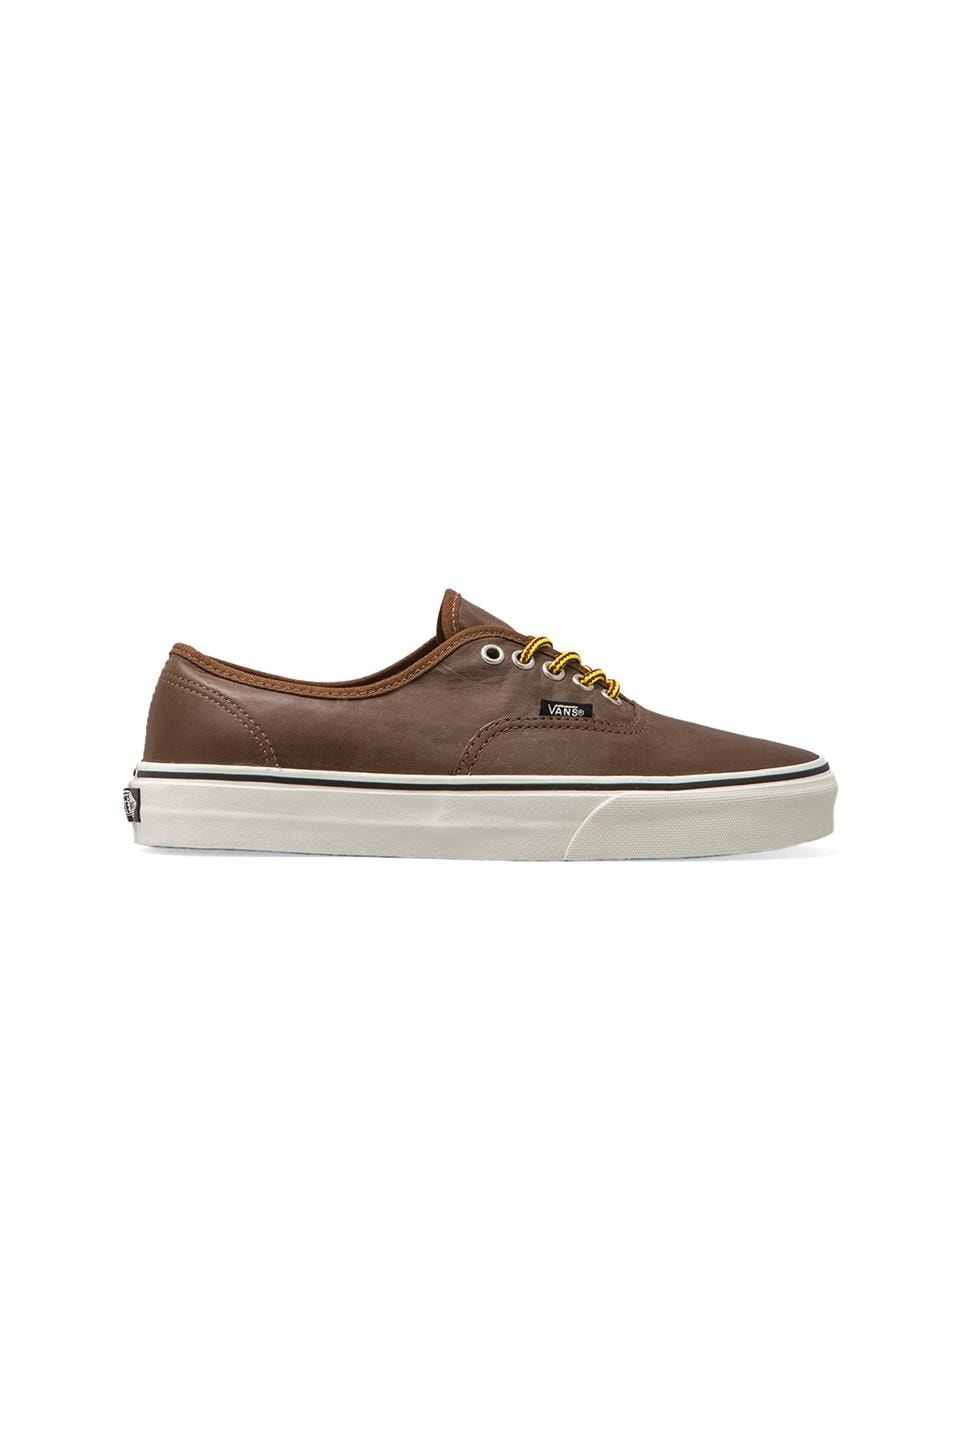 Vans Authentic in Leather/Bison